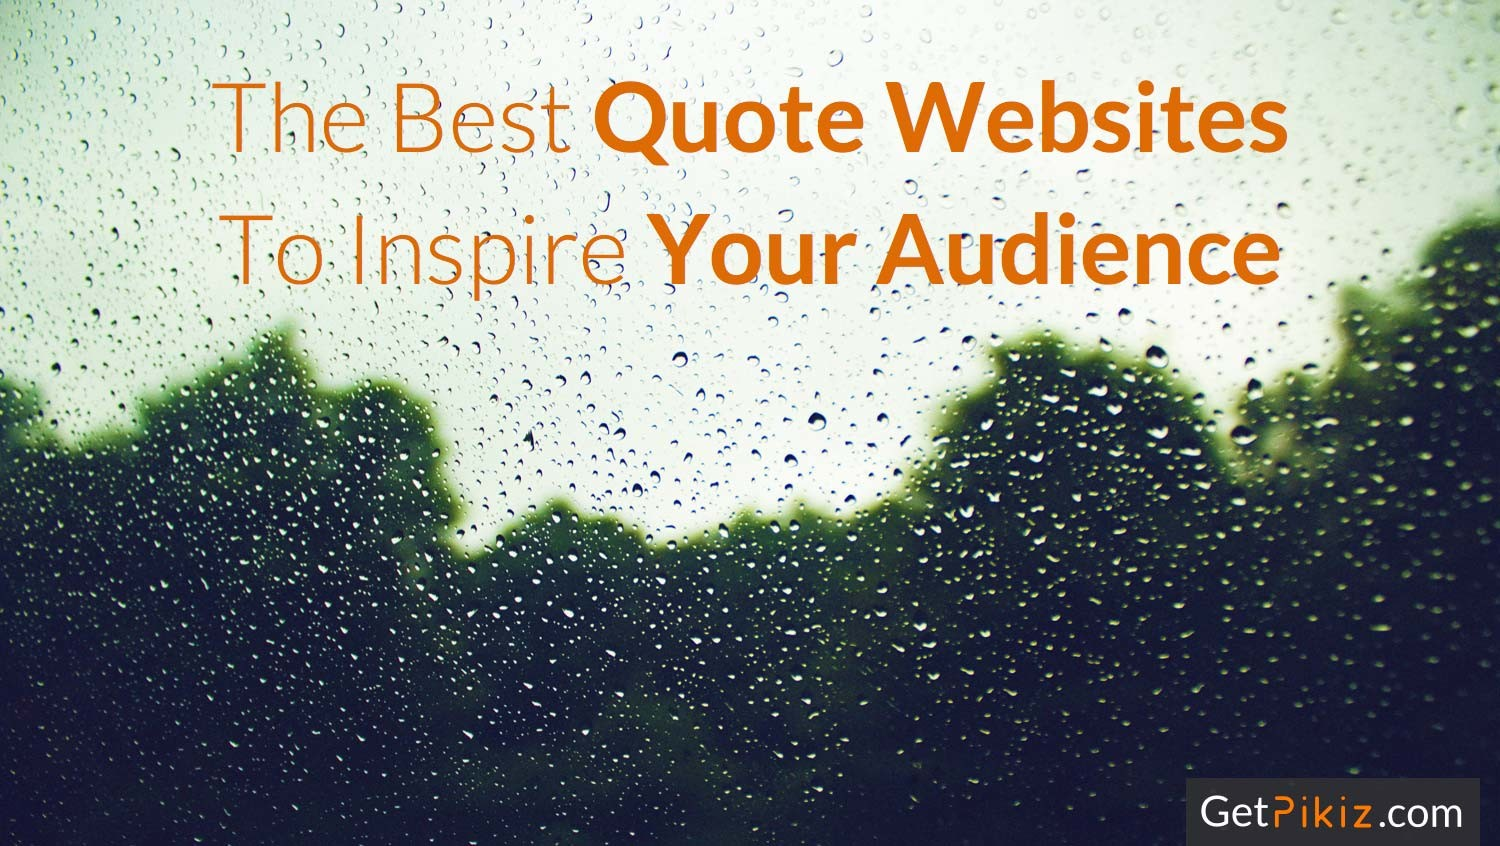 The Best Quote Websites To Inspire Your Audience